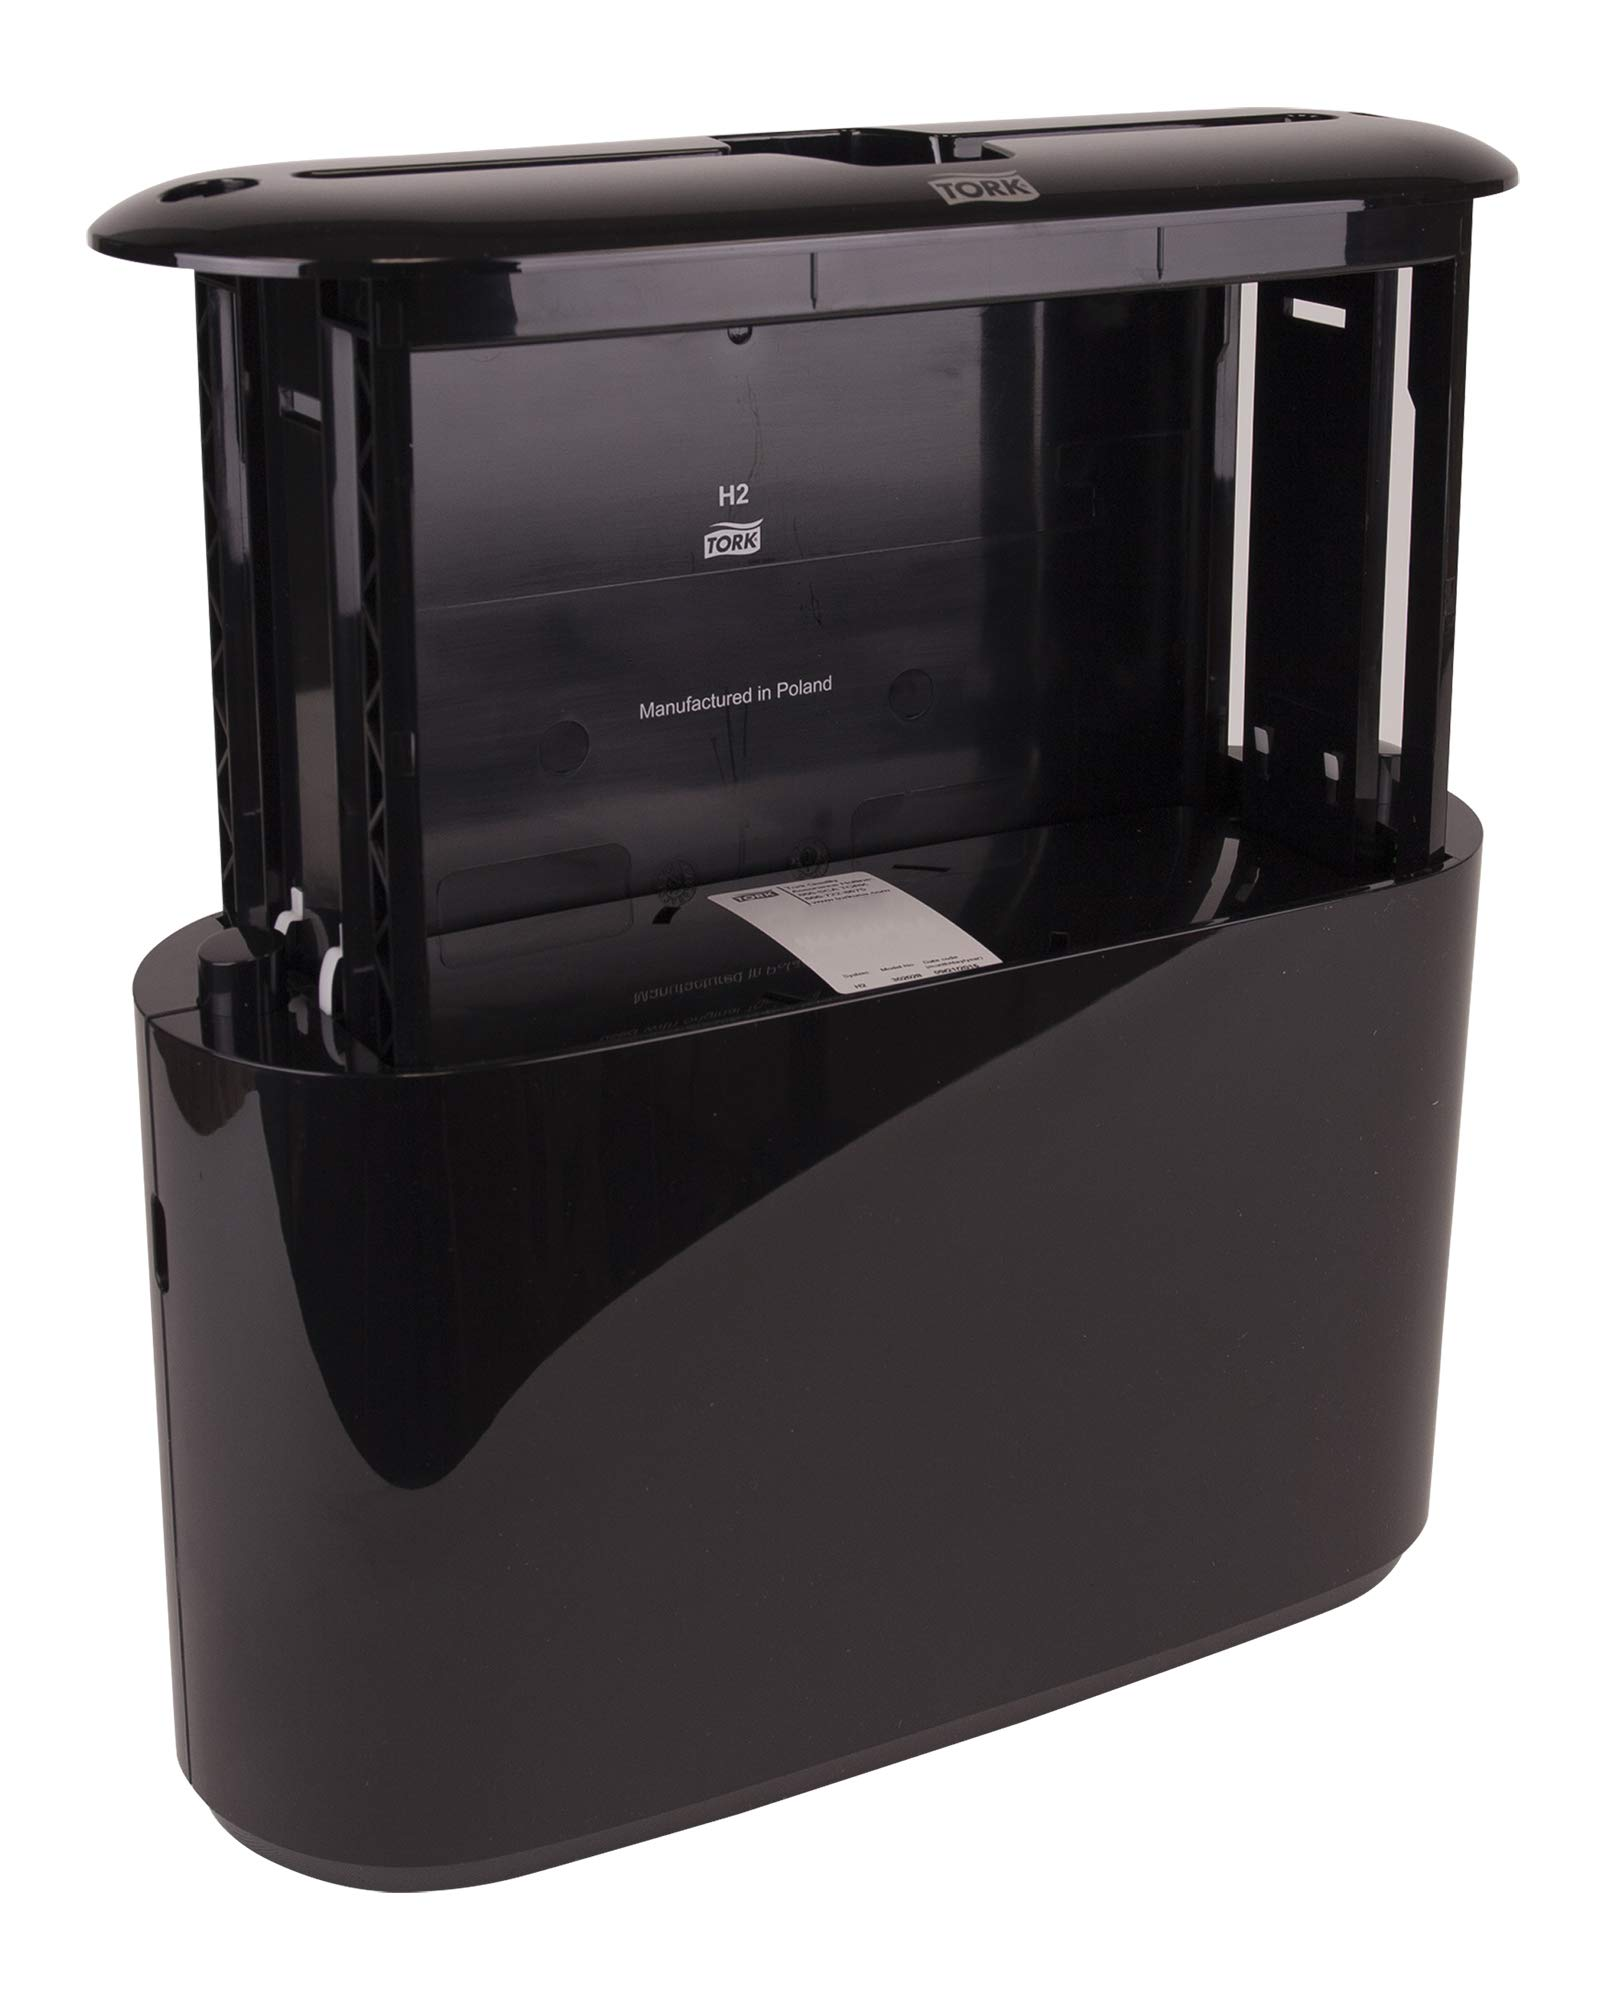 Tork Xpress 302028 Countertop Multifold Hand Towel Dispenser, Plastic, 7.92'' Height x 12.68'' Width x 4.56'' Depth, Black (Case of 1) For use with Tork MB550A, MB640, MB540A by Tork (Image #5)